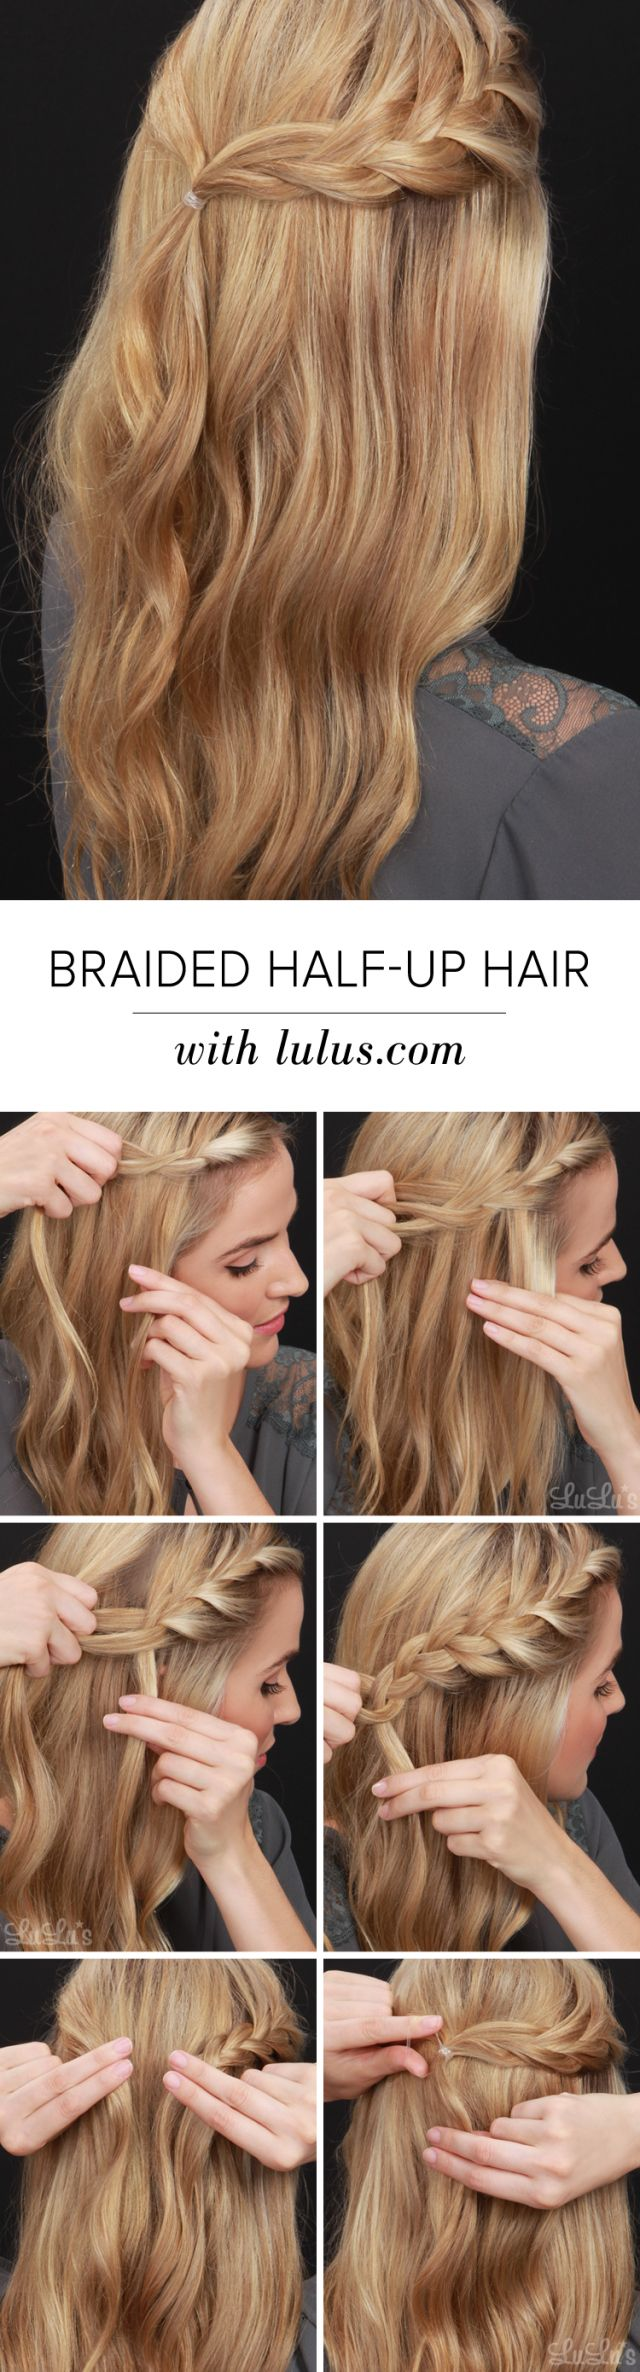 Great for a day at the office, date night, and every other occasion imaginable, our Half-Up Braided Hair Tutorial is so easy to achieve!